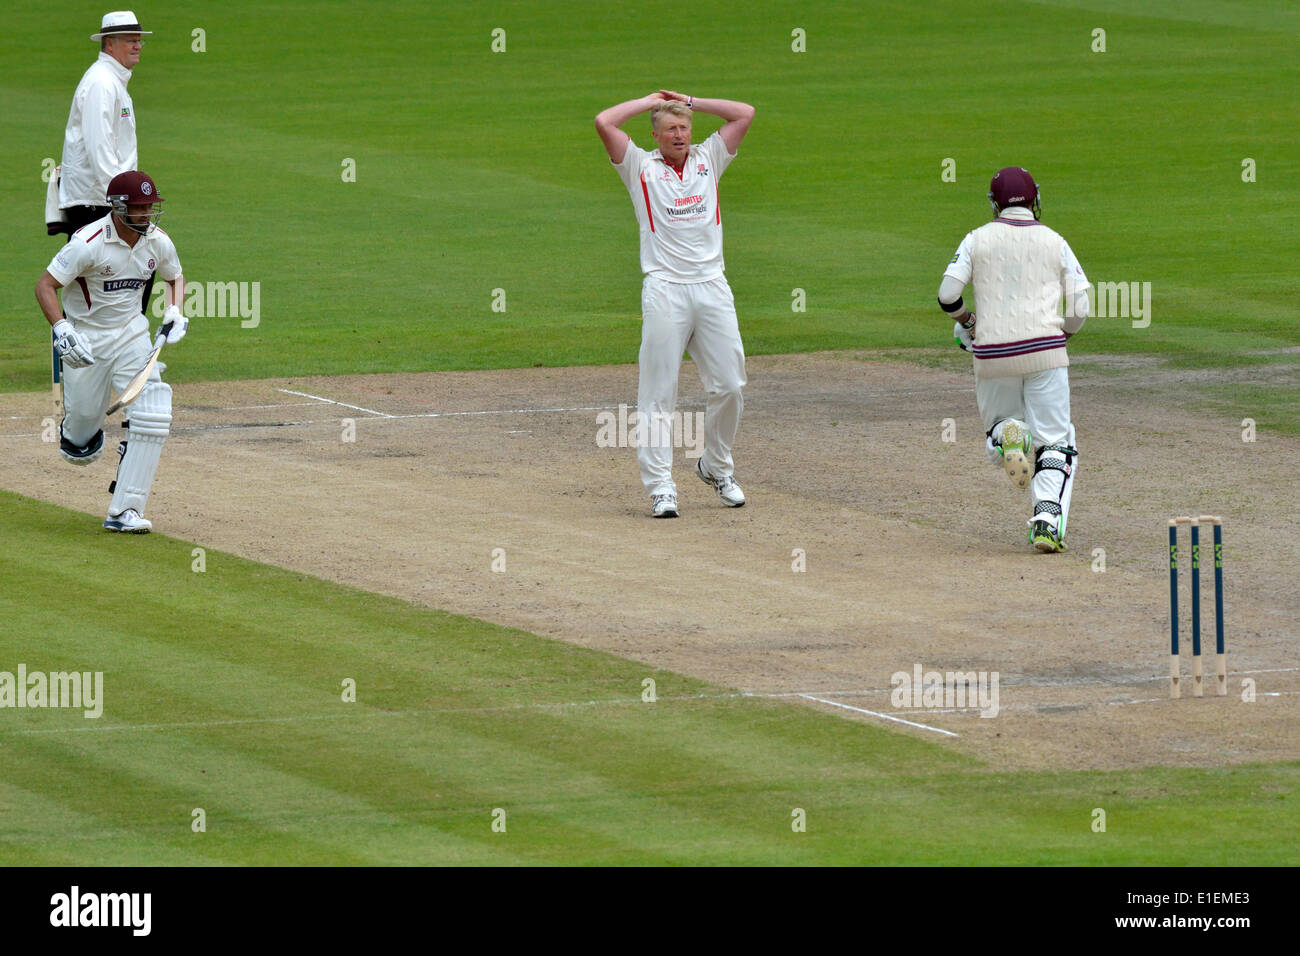 Emirates Old Trafford,  Manchester, UK. 2nd June 2014. Lancashire v Somerset.  Glen Chapple (Lancashire) bemoans his luck after seeing a lucky edge from the batsman go through the slips on the second day of the County Championship match. County  Championship Cricket Division 1  Manchester, UK Credit:  John Fryer/Alamy Live News - Stock Image